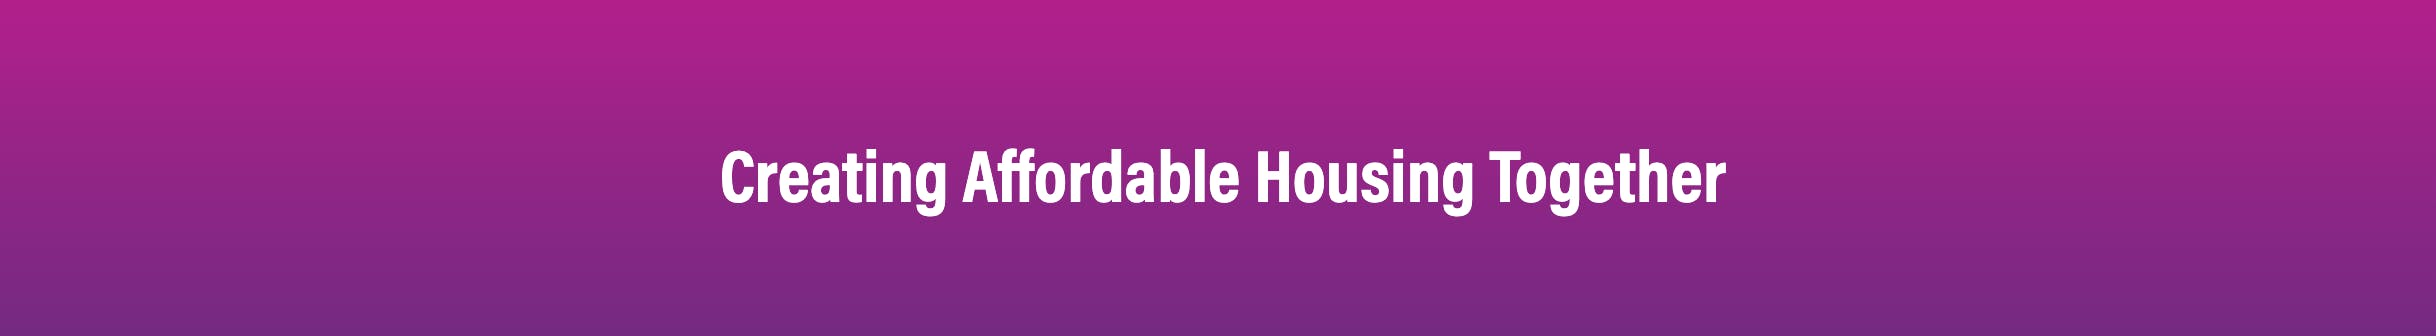 Creating Affordable Housing Together